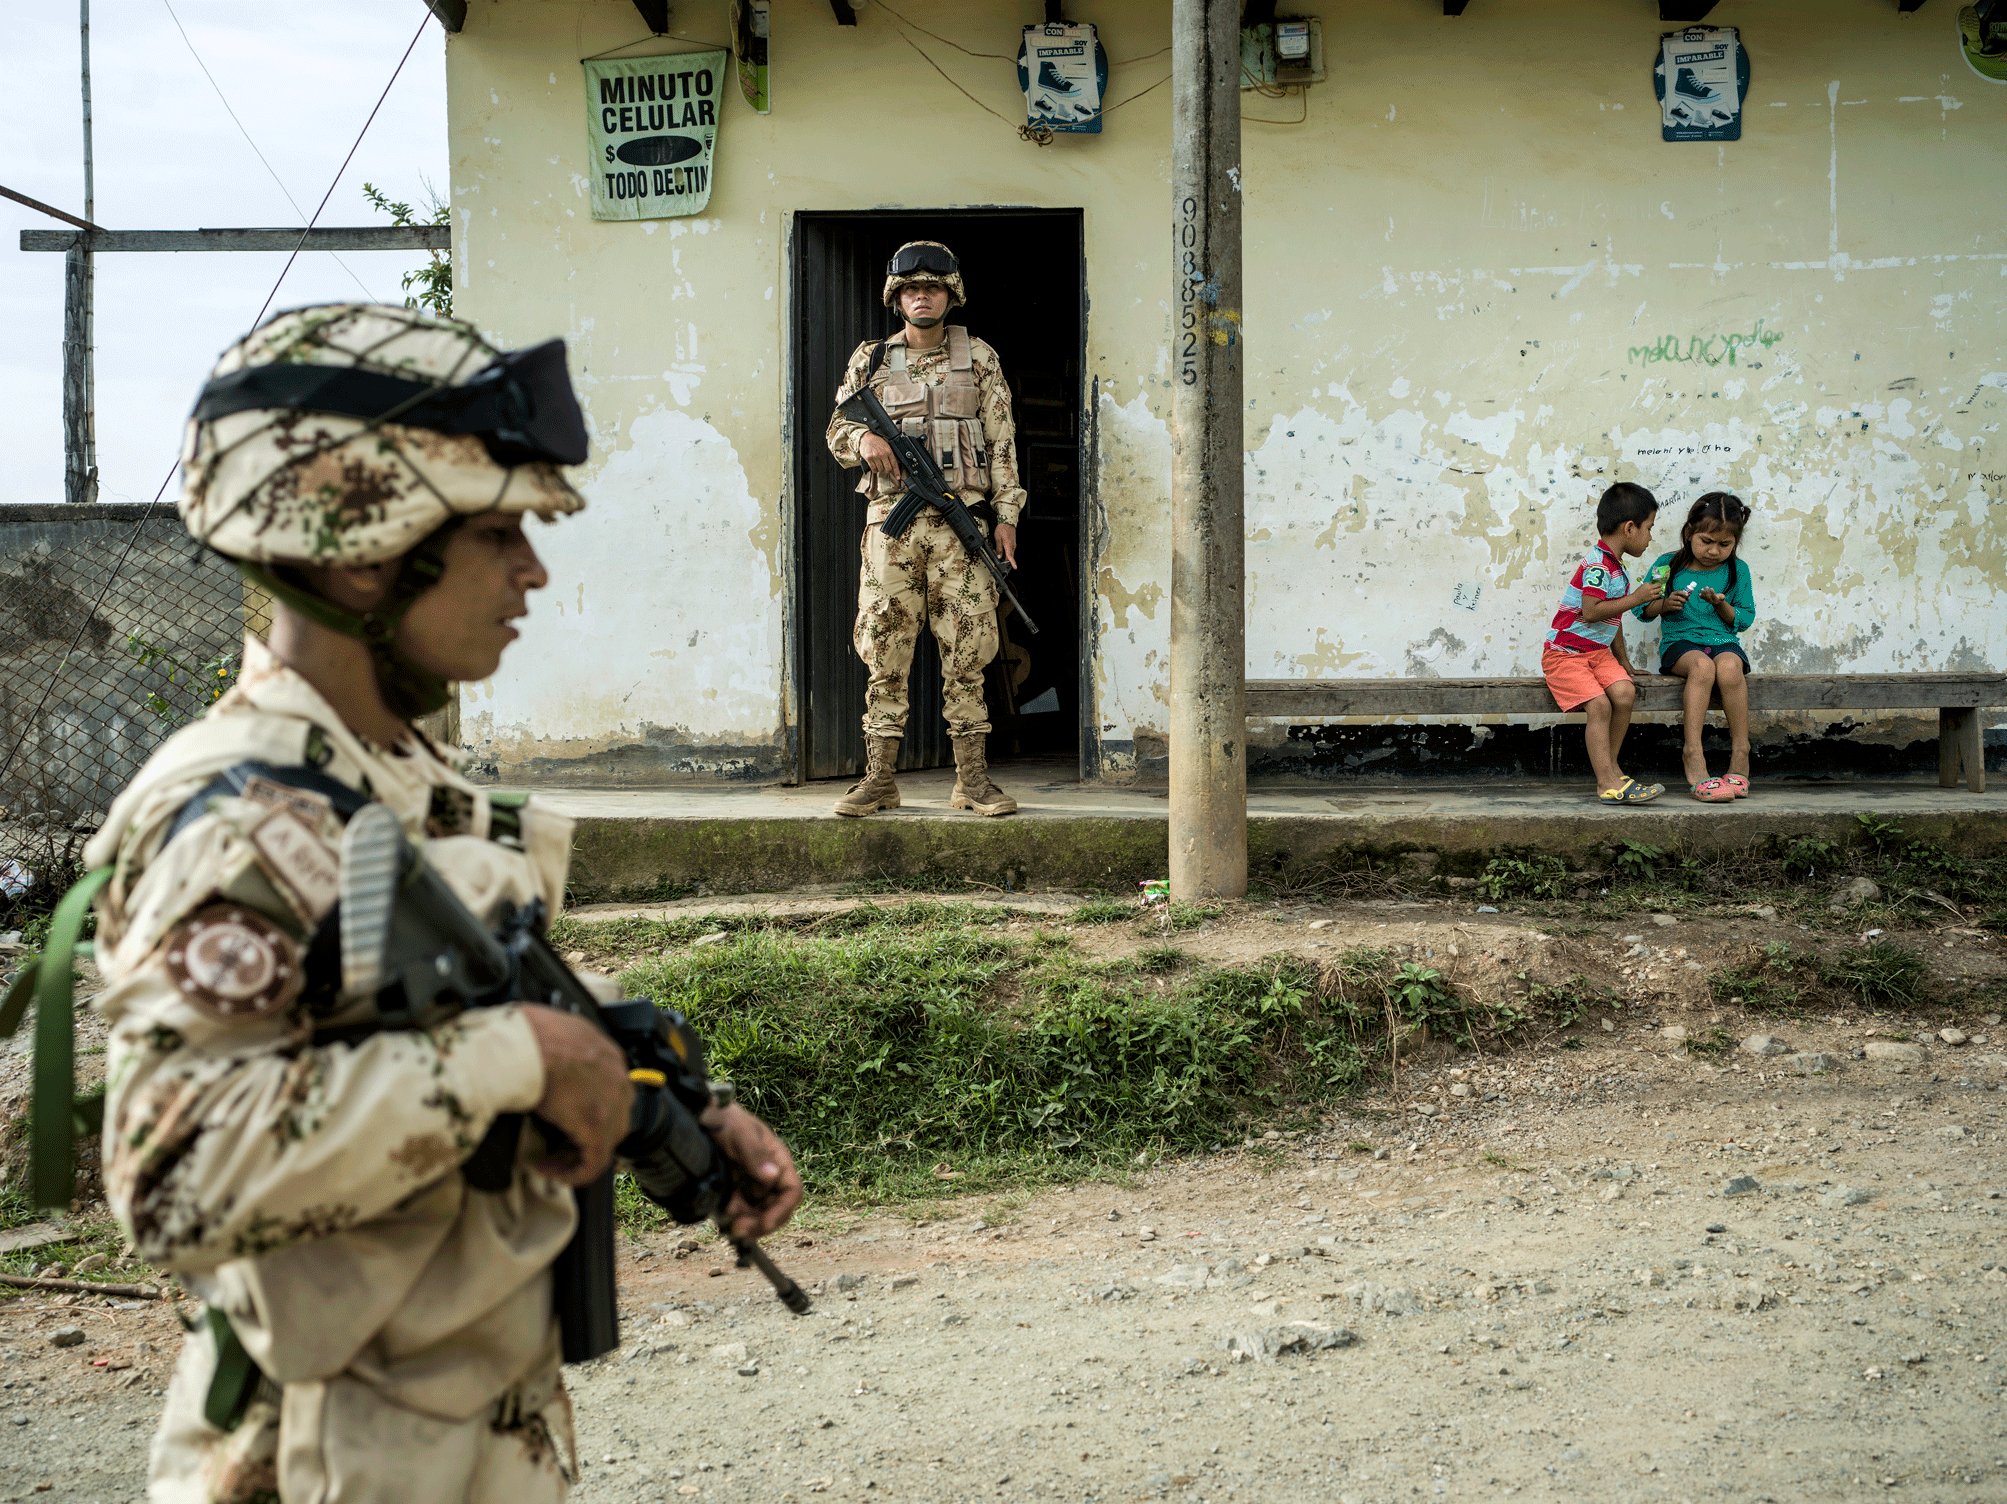 Armed soldiers from the Colombian national army stationed near Corinto as part of the UN mission as prescribed by the peace accord between the Colombian government and the FARC